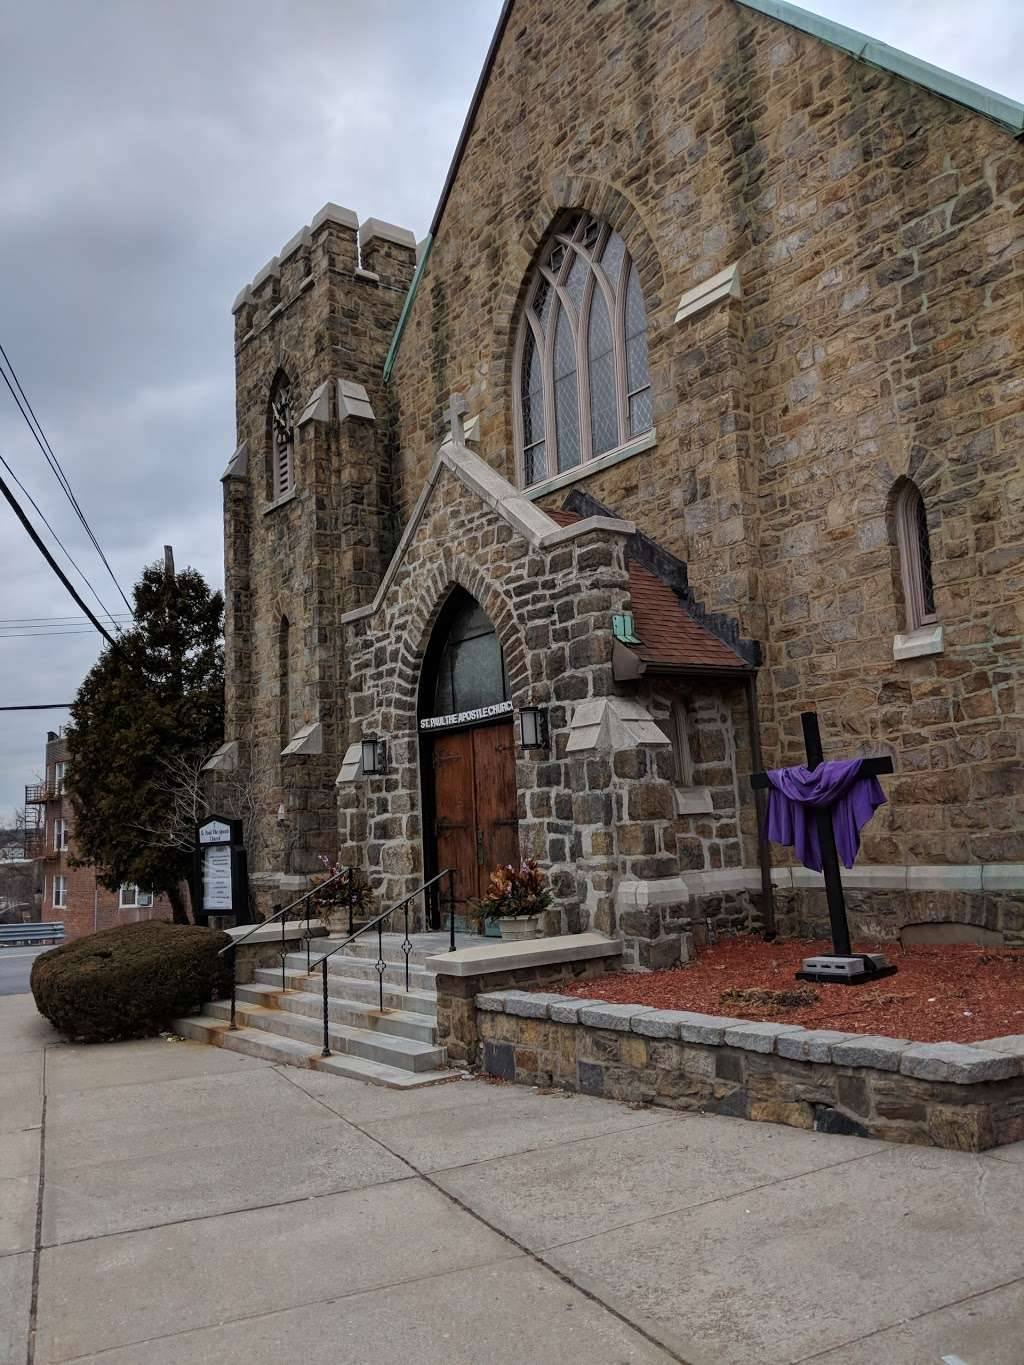 Saint Paul the Apostle Catholic Church - church  | Photo 1 of 3 | Address: Yonkers, NY 10705, USA | Phone: (914) 963-7330